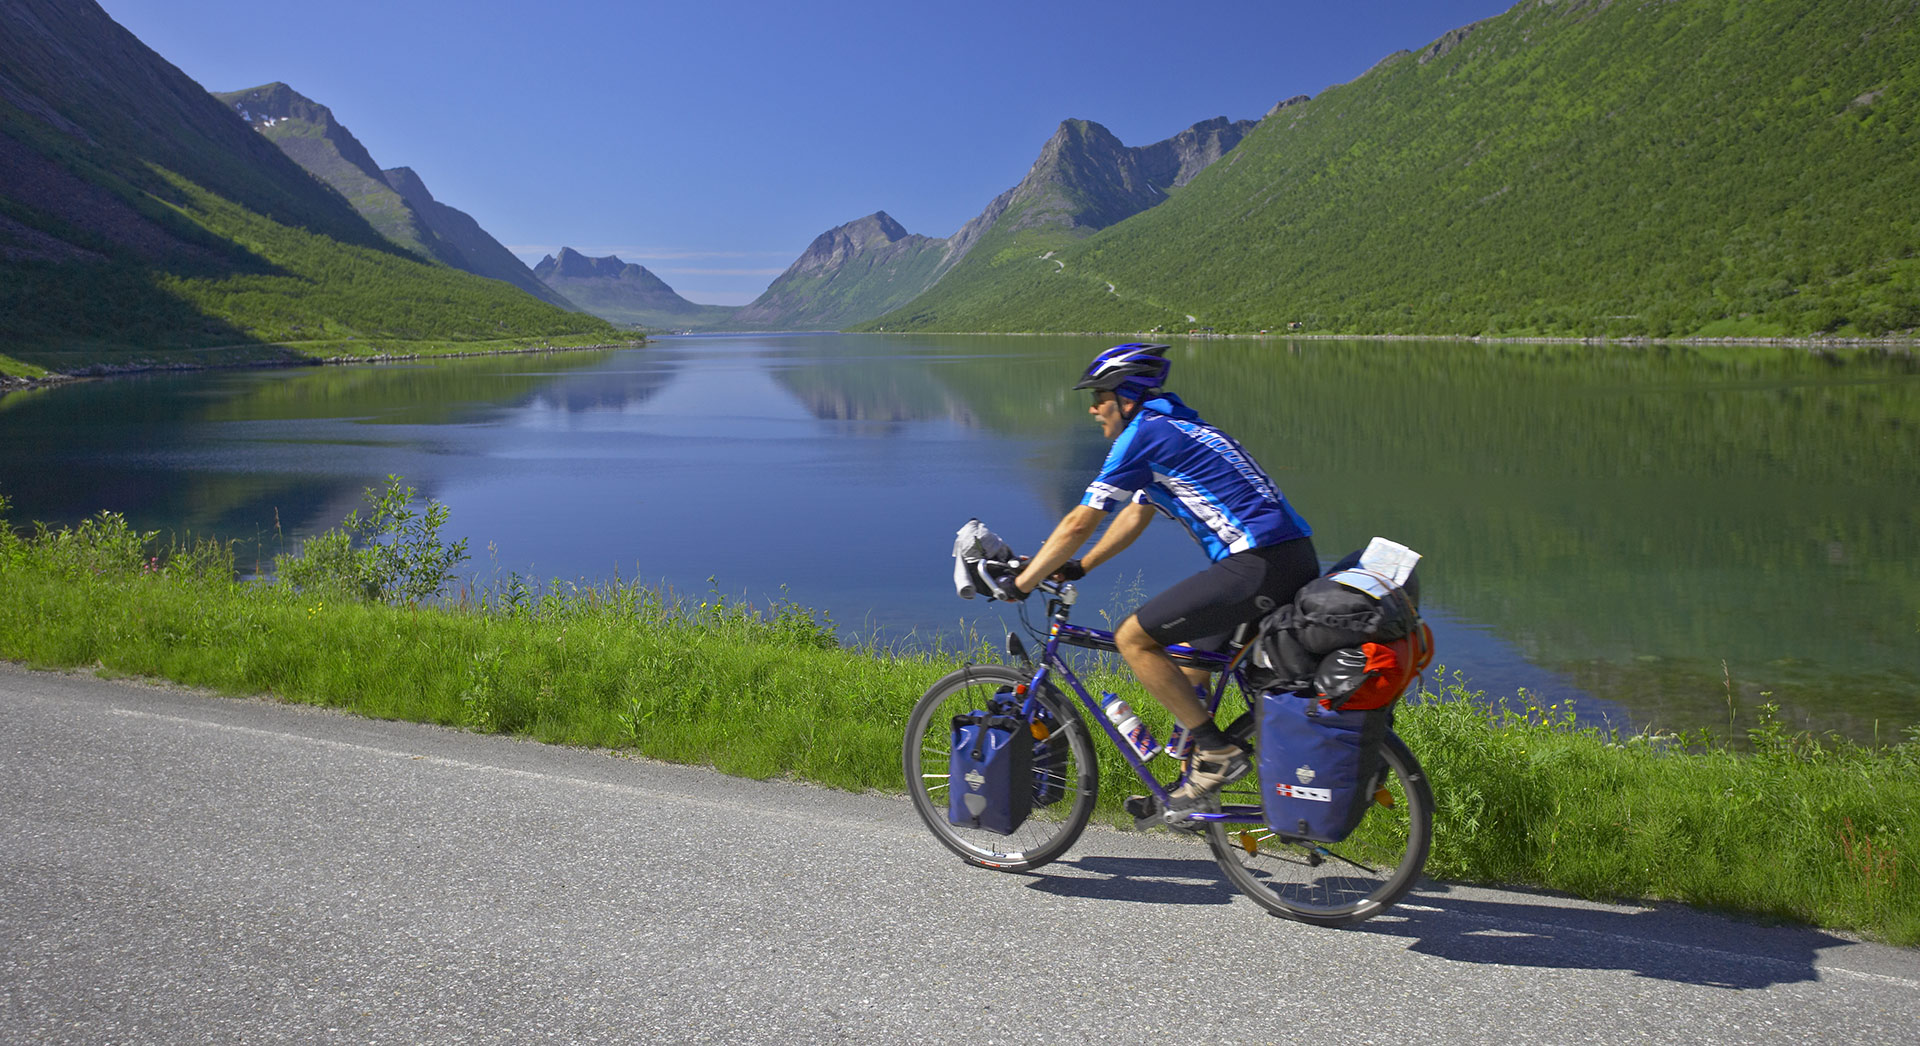 A cycletour on the National Tourist Route © Bård Løken